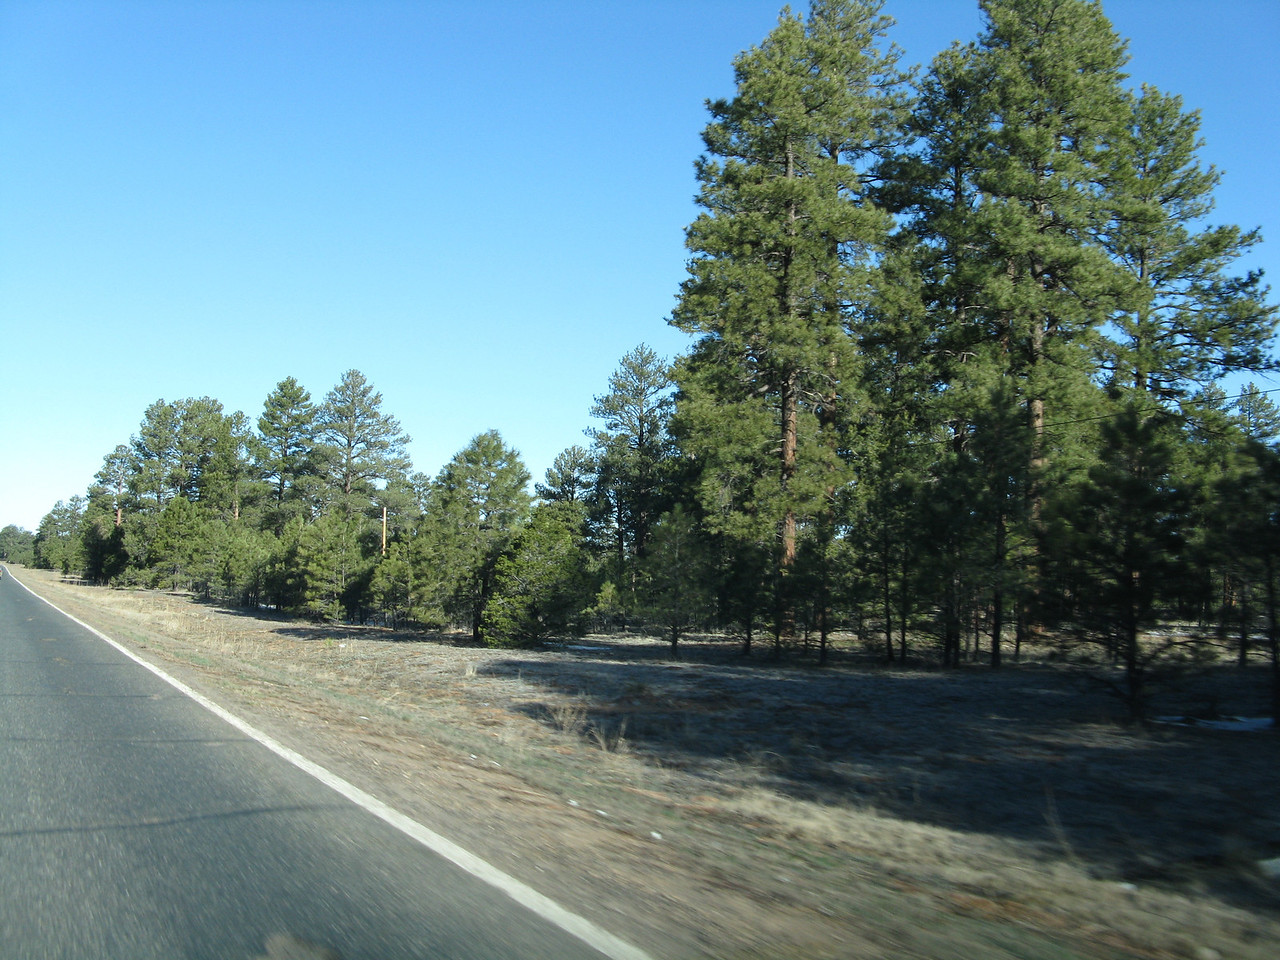 Tall evergreen trees line the road as we head west from Window Rock to Ganado.